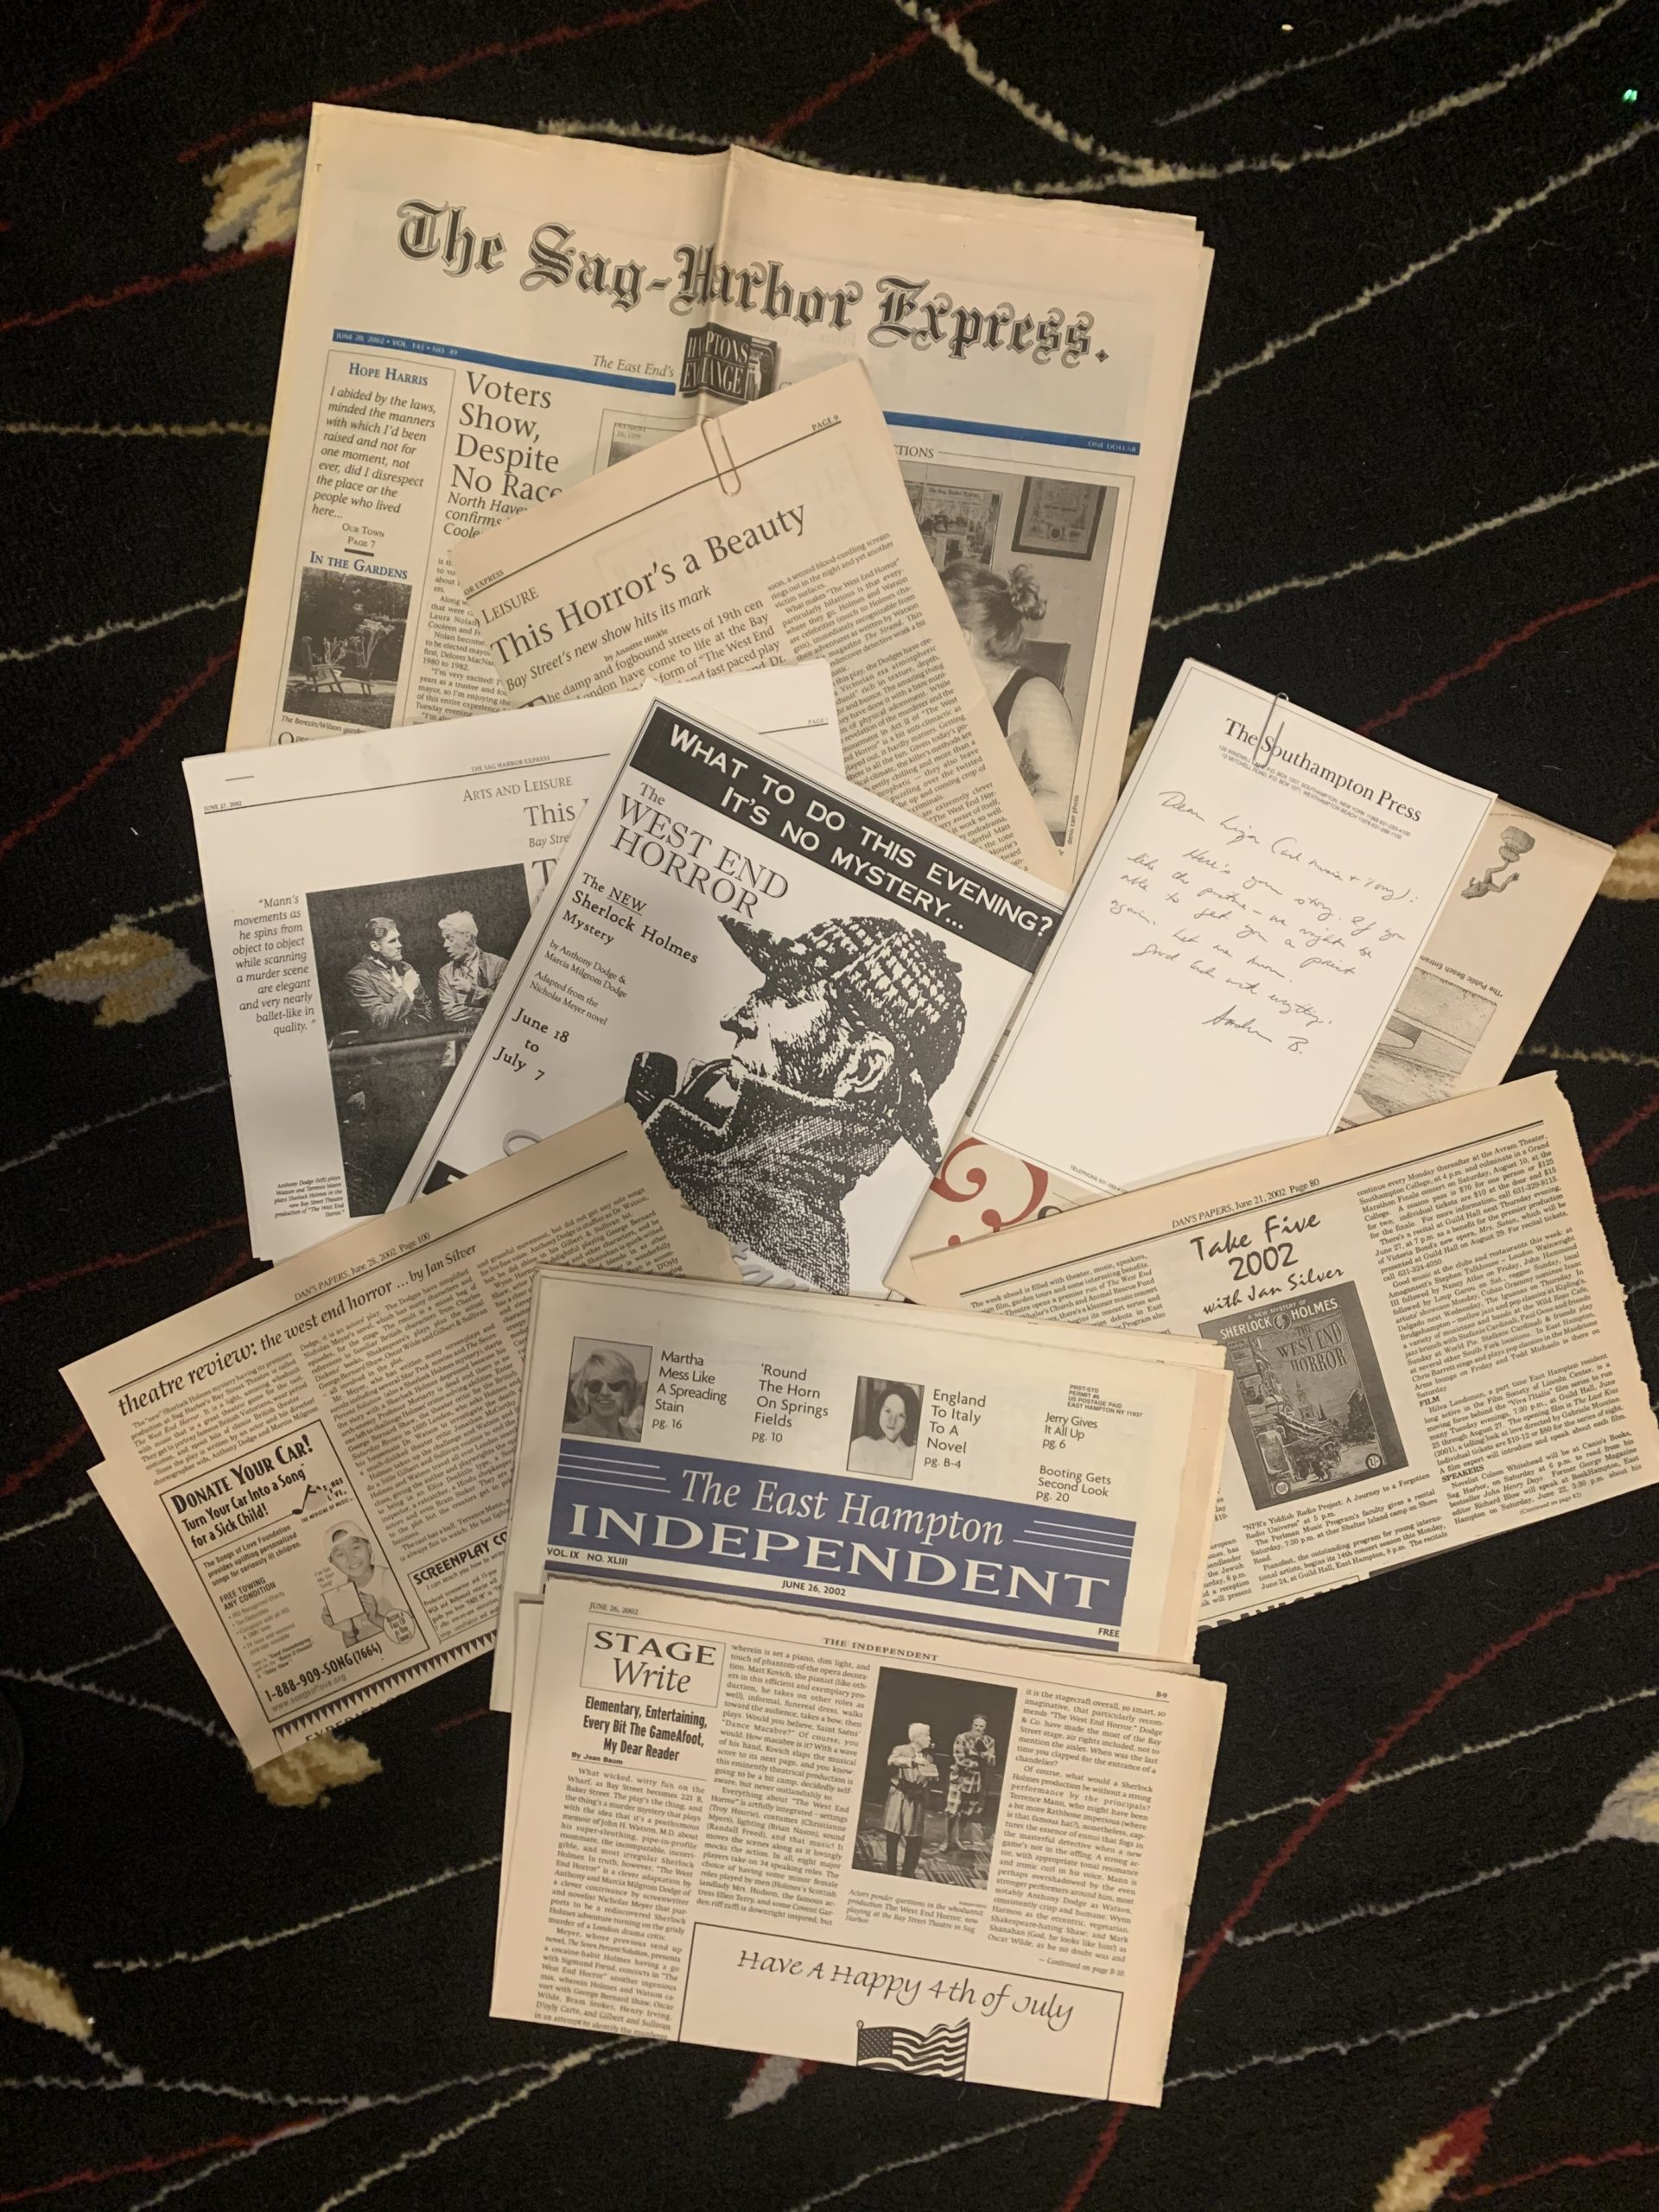 Some of Marcia Milgrom Dodge's boxes and ephemera from the productions she directed at Bay Street Theater.